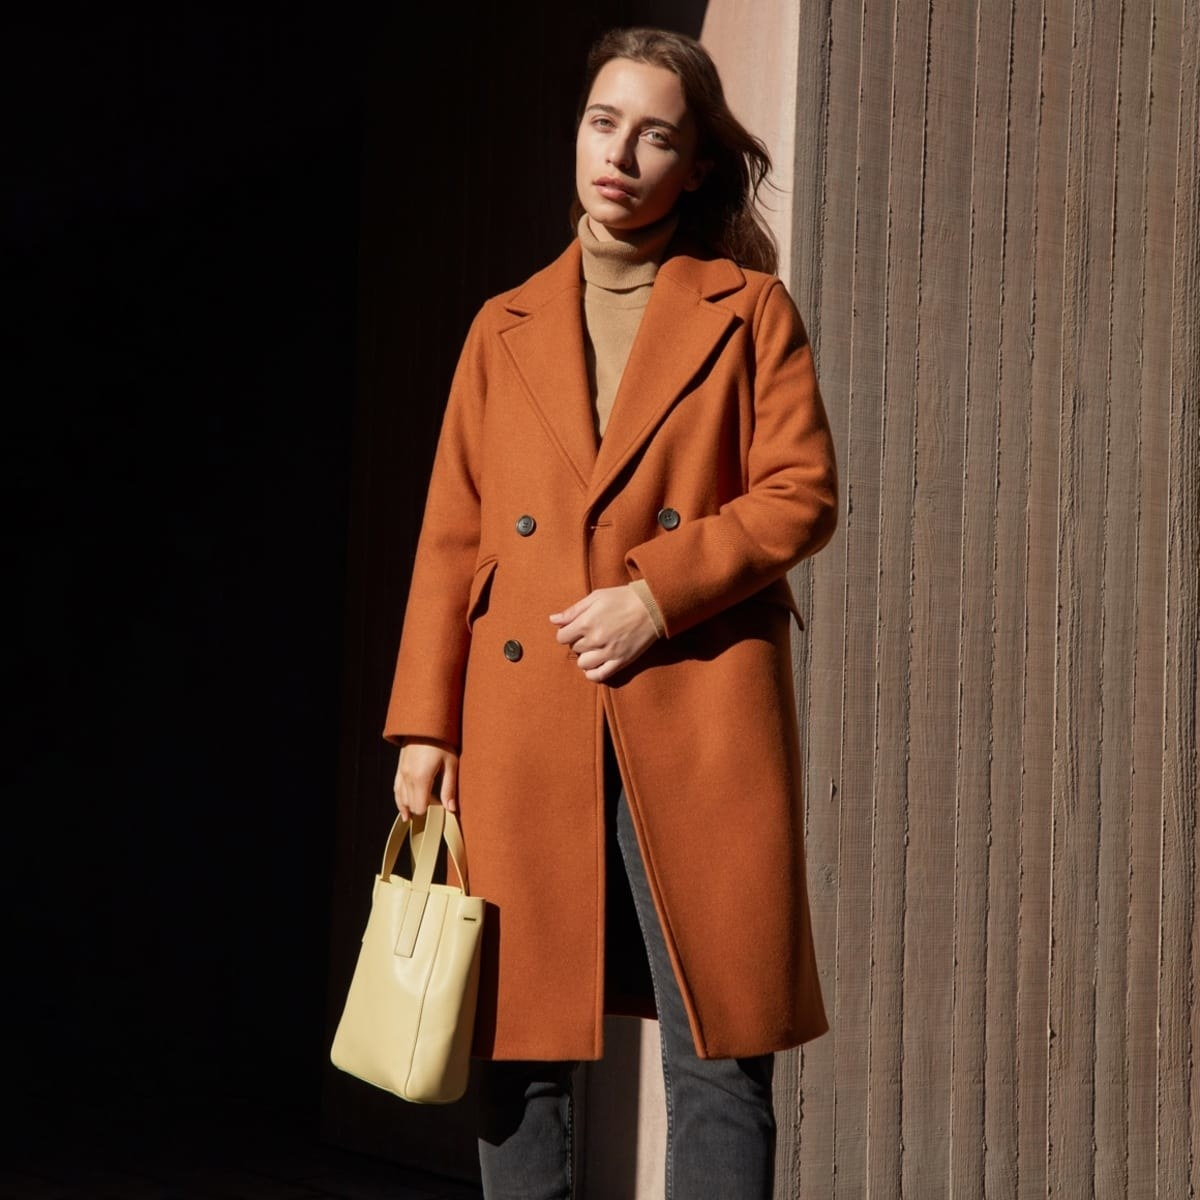 Model wearing the double-breasted coat in the color toffee